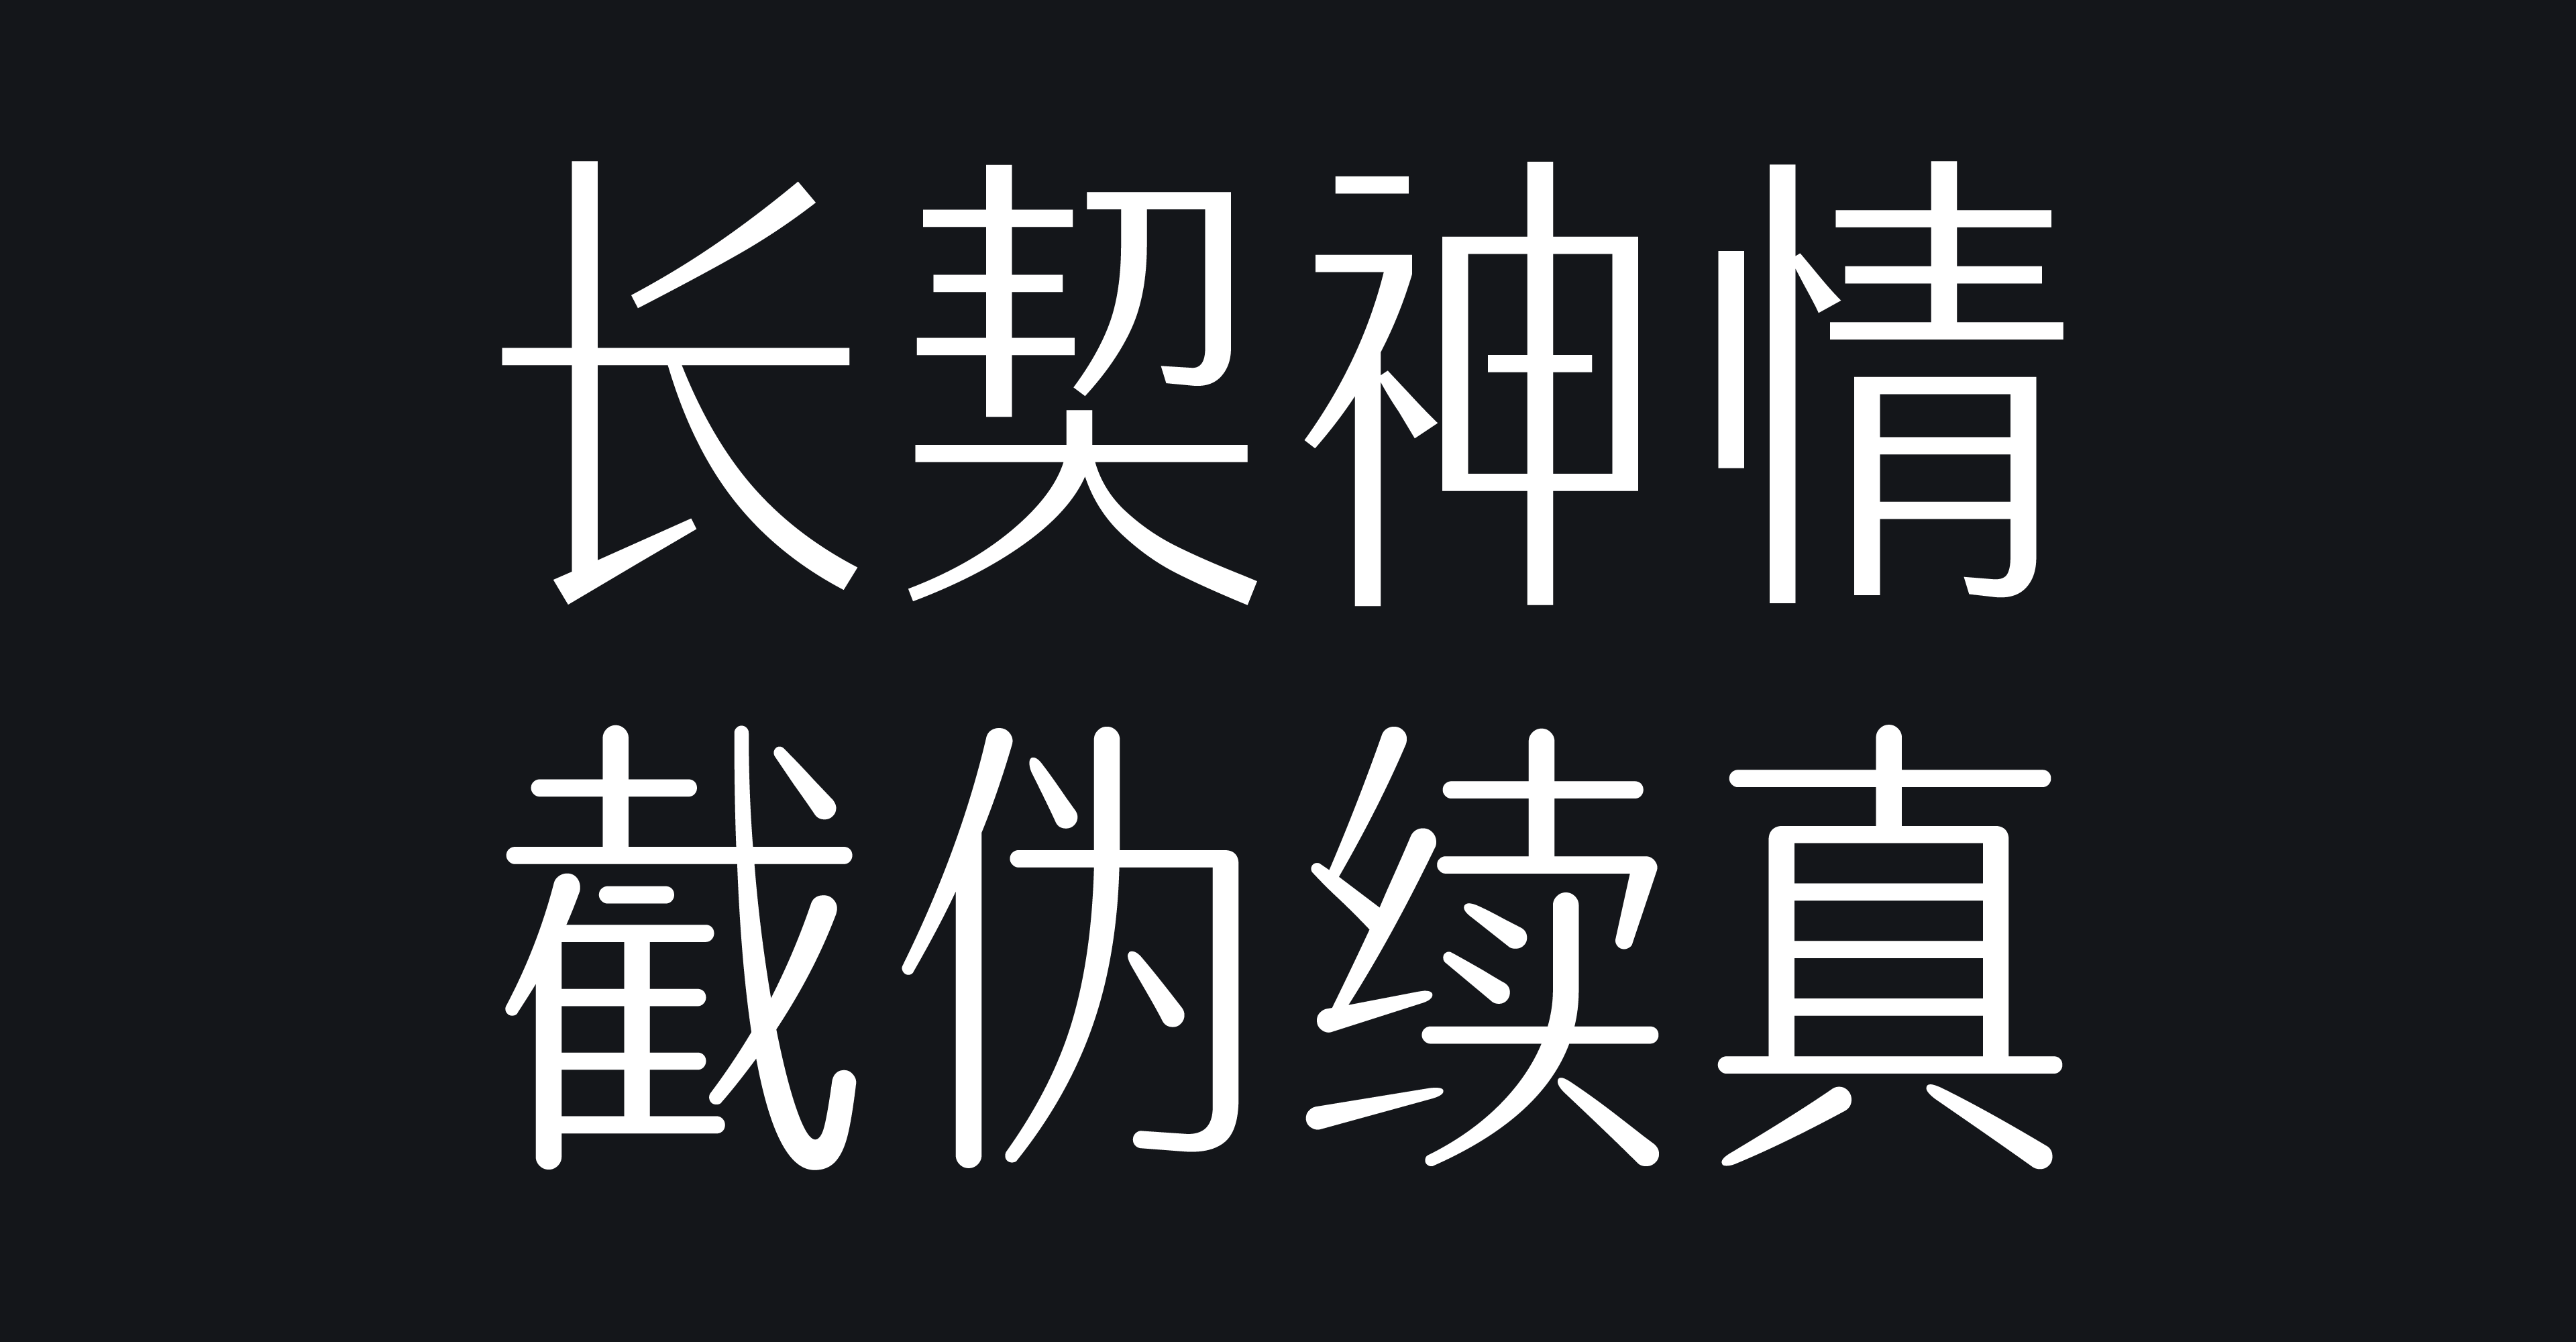 16P Chinese font design collection inspiration #.173